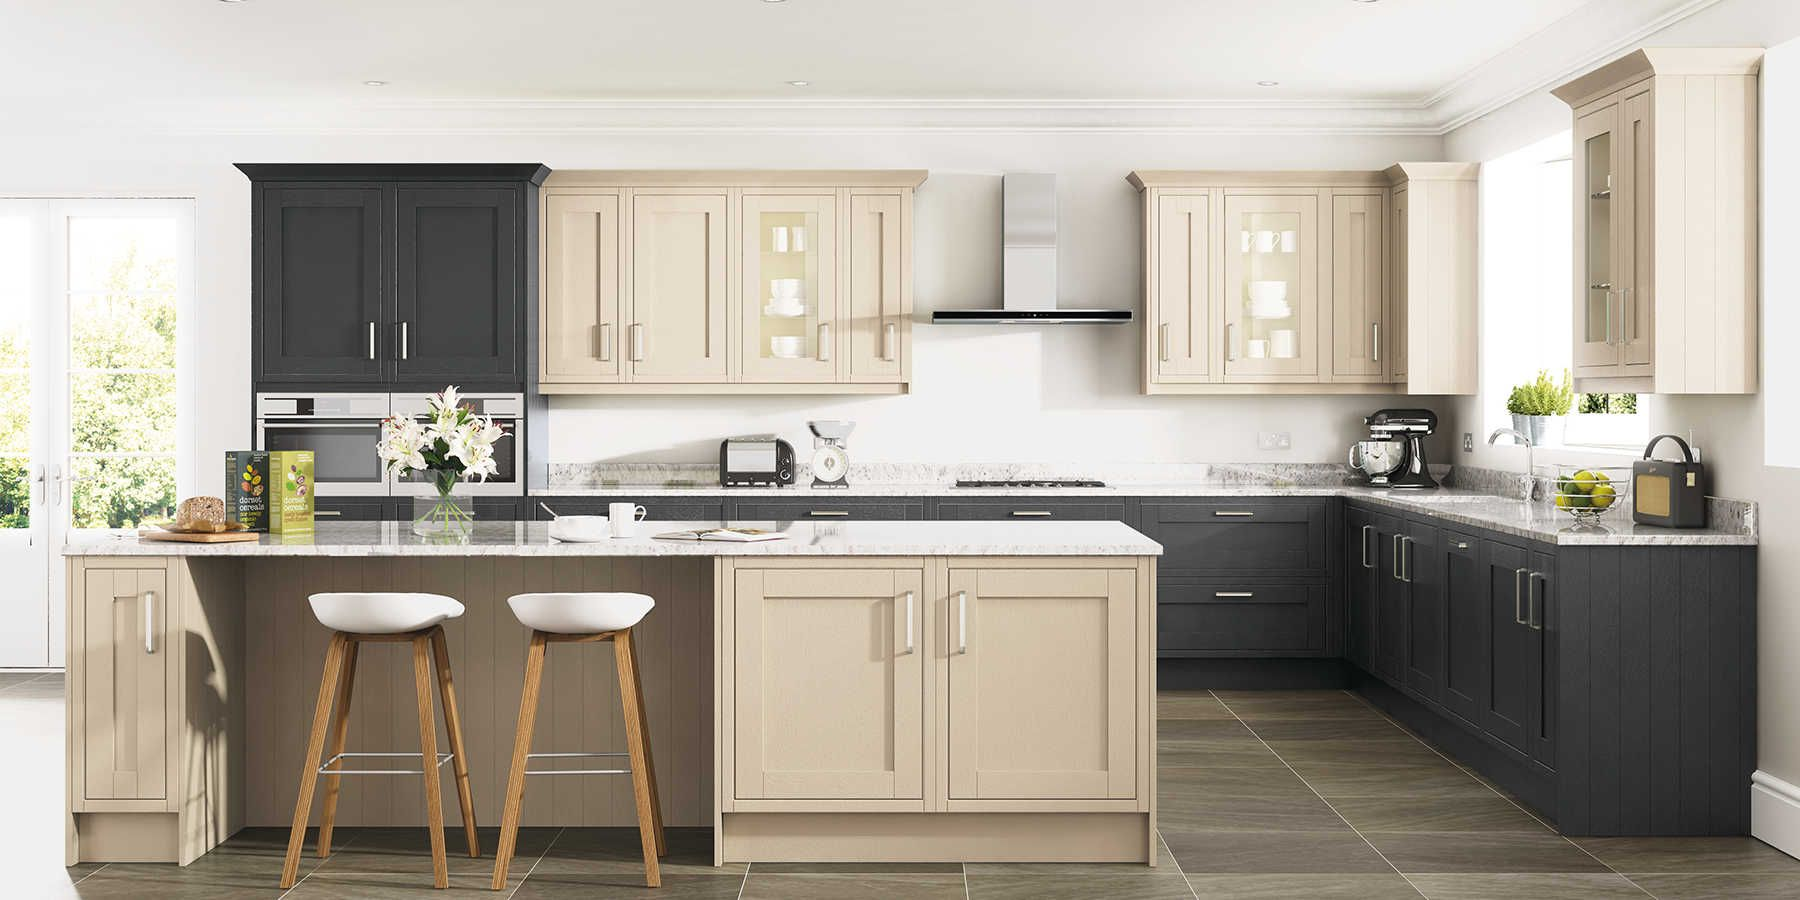 Symphony Group U2013 Experts In Fitted Kitchens, Bedrooms And Bathrooms   New  England